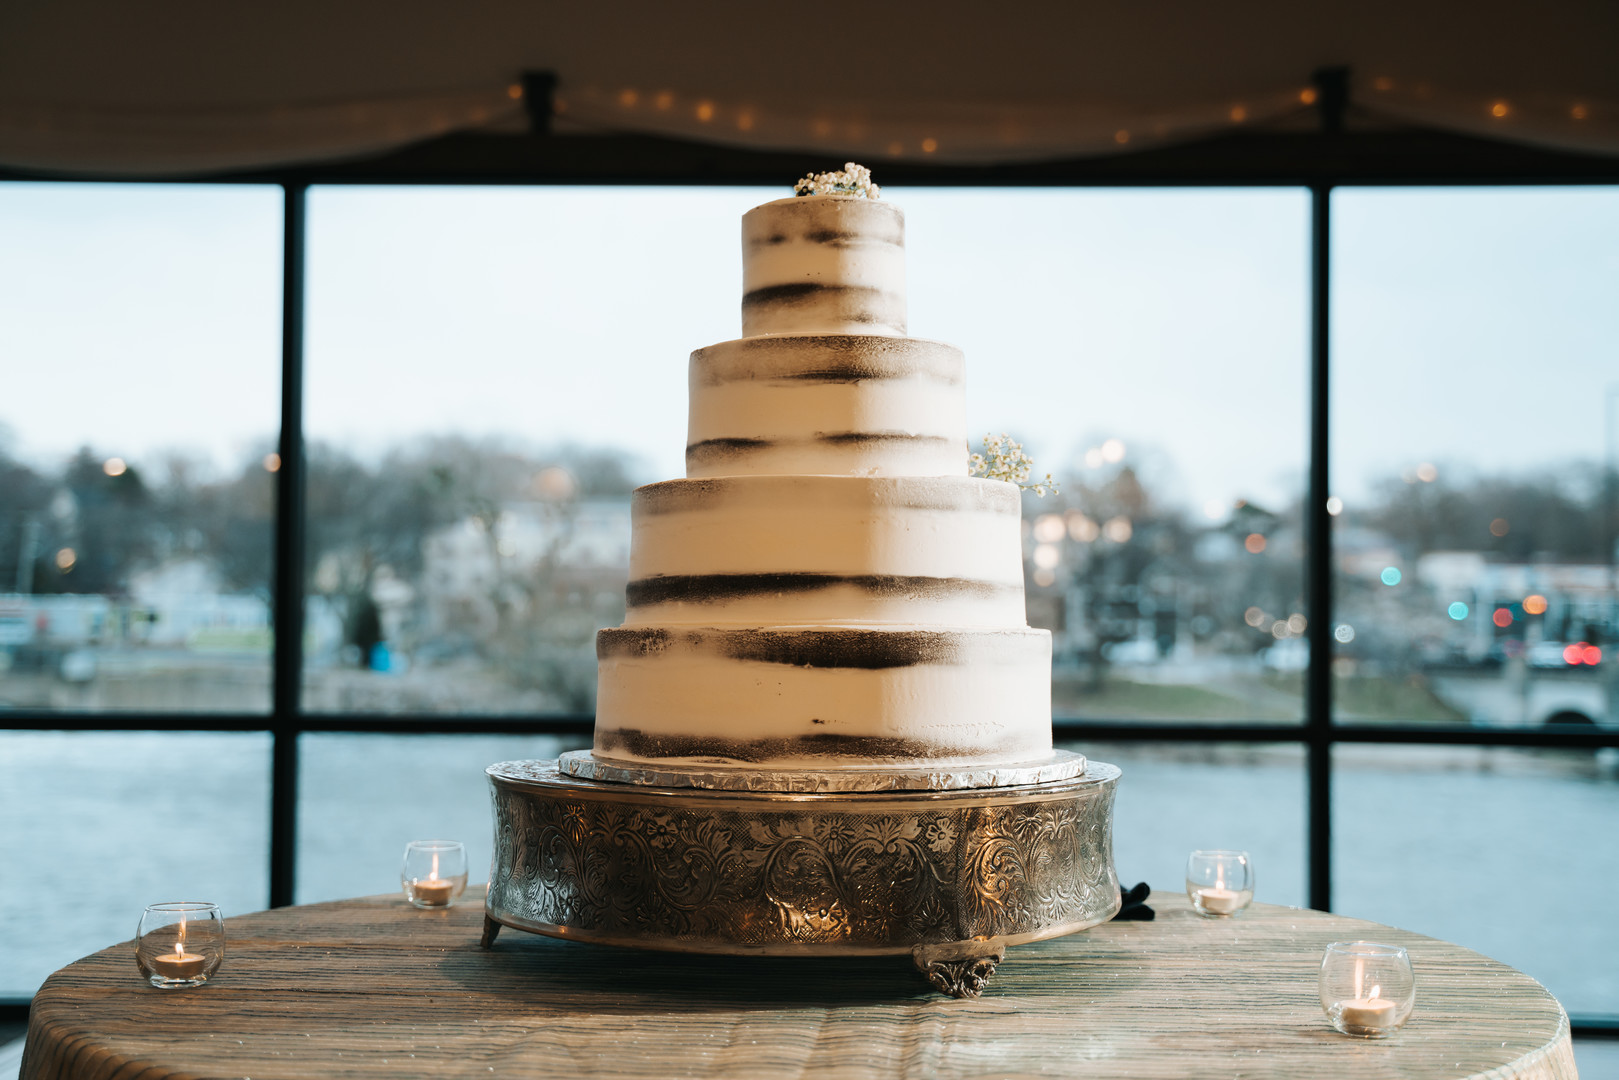 Simple semi-naked wedding cake design: Beautiful Illinois wedding at Riverside Receptions captured by Windy City Production. See more wedding ideas at CHItheeWED.com!